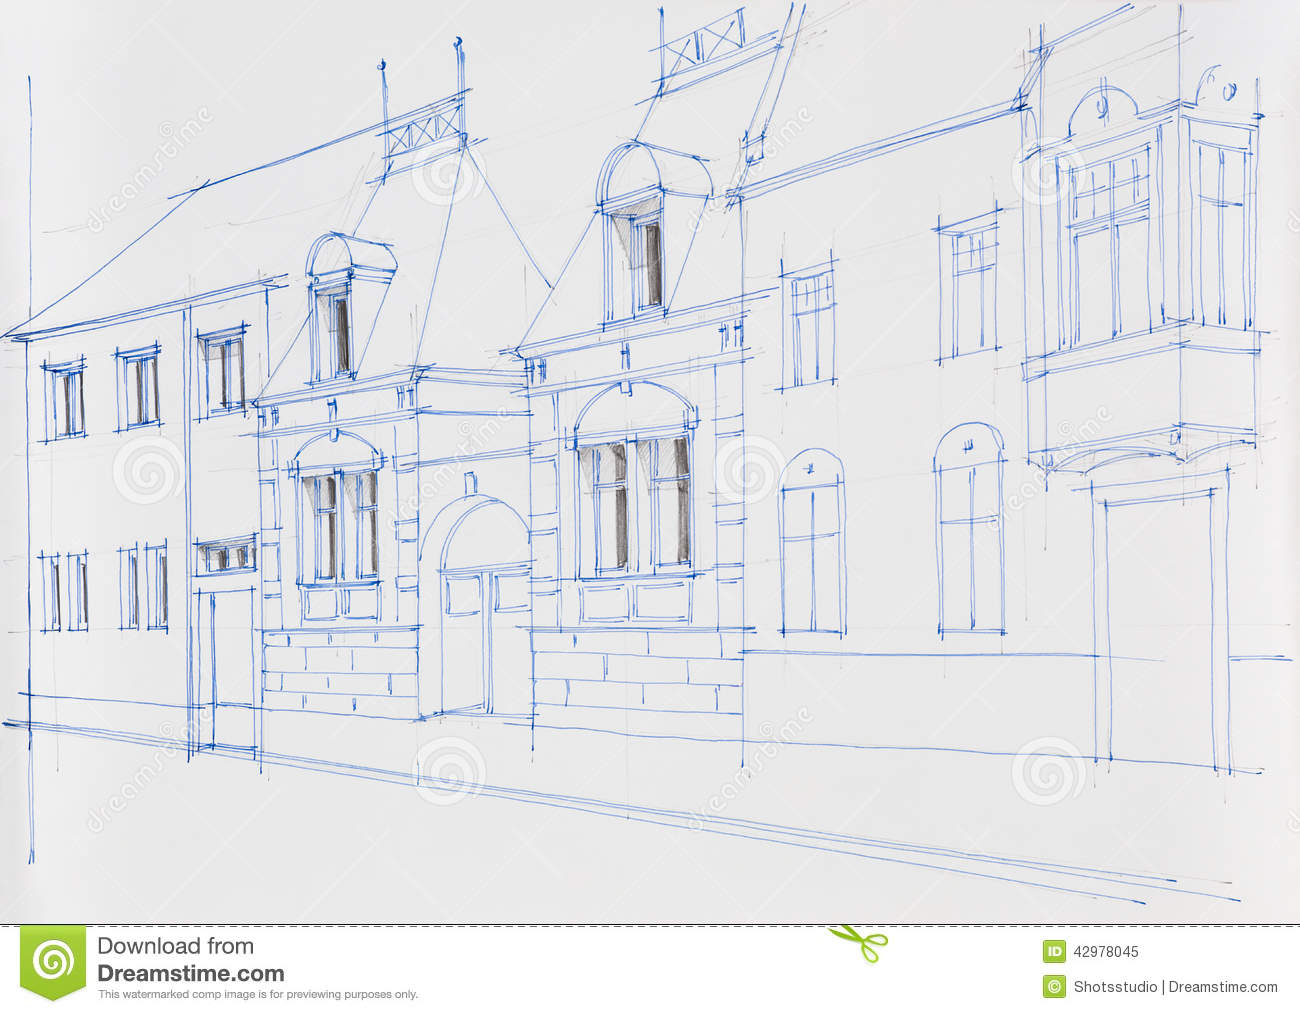 Dessin d 39 architecture de fa ade de b timent illustration for Dessin batiment 3d